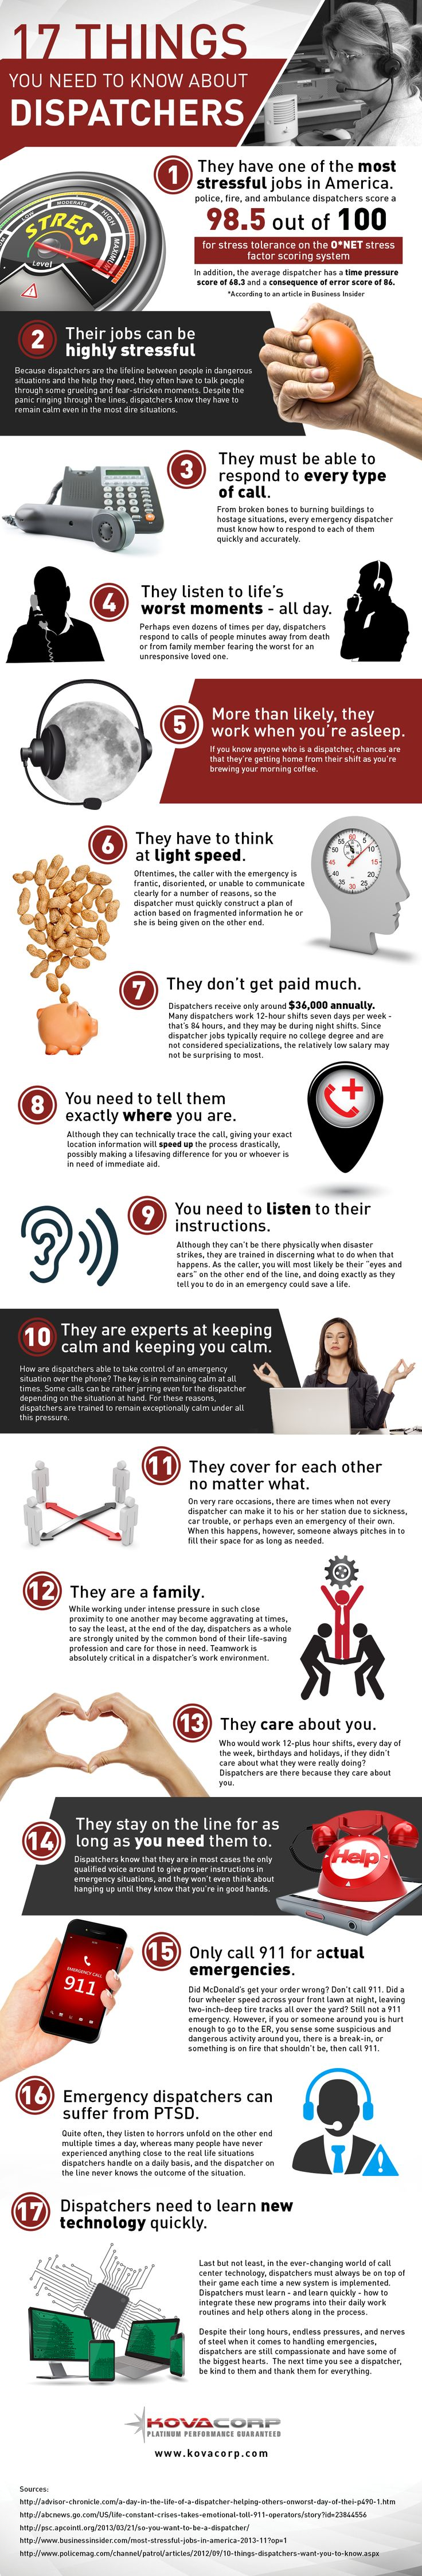 17 things to know about dispatchers infographic Not many may know that I am a 911 dispatcher and this is my life in an infographic!